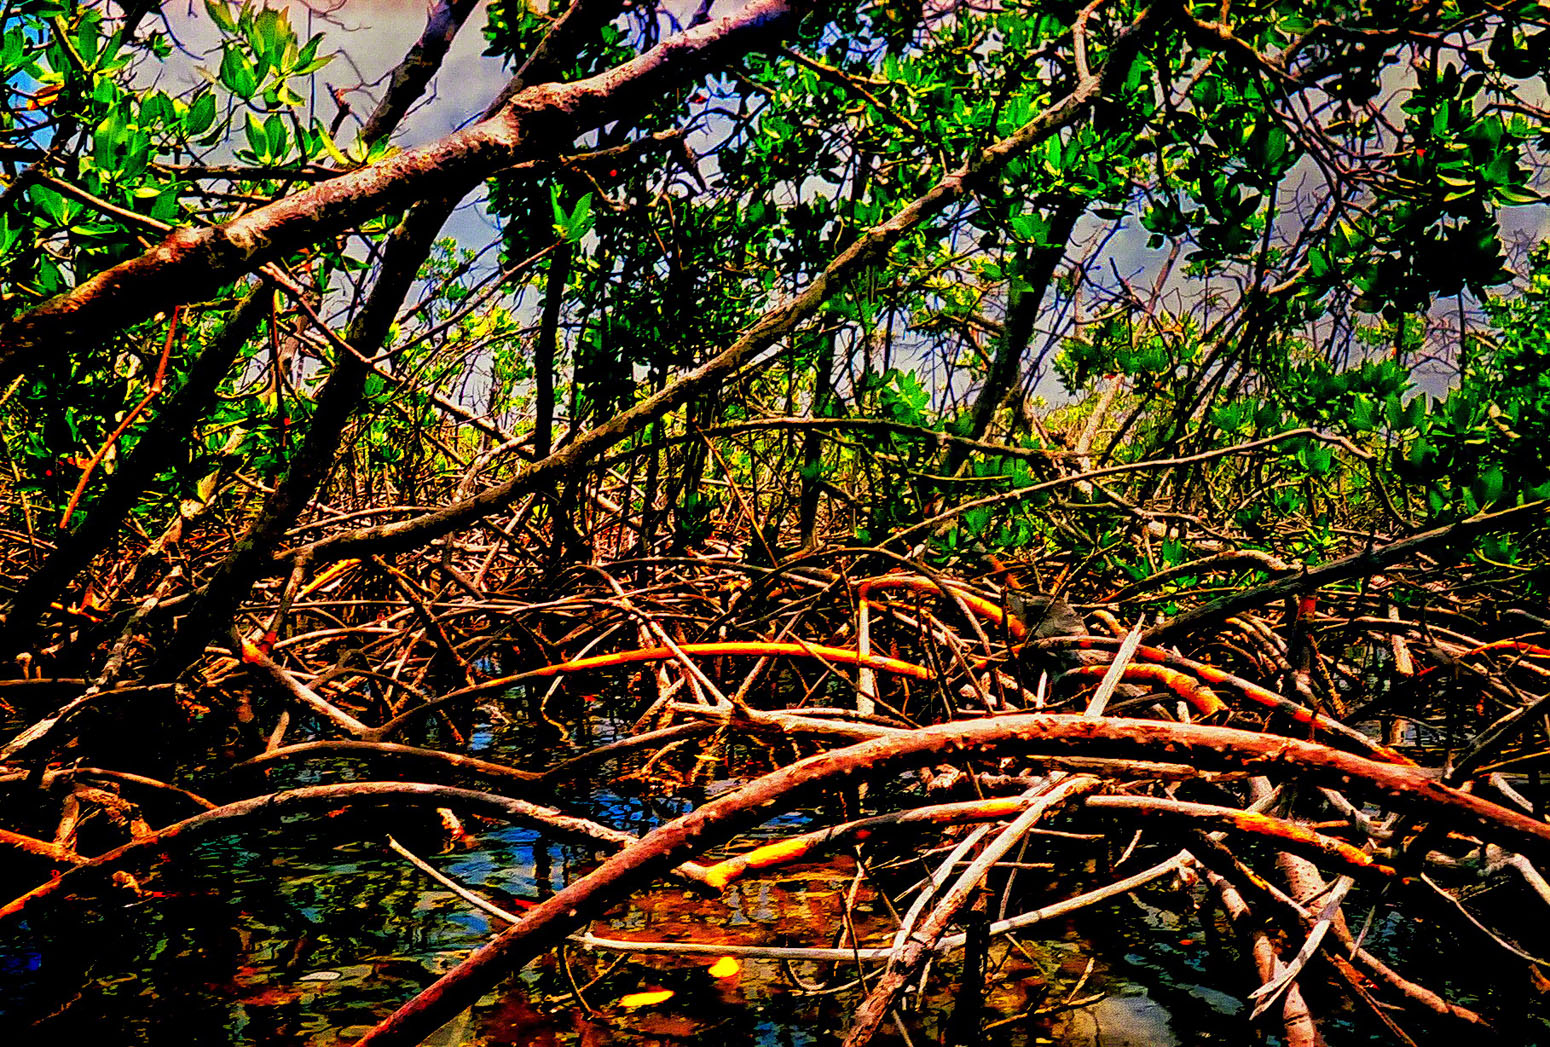 A fresh water sulphur spring located in Bonefish Creek, and deep in the salt water Mangrove Swamp lies the curative waters of...